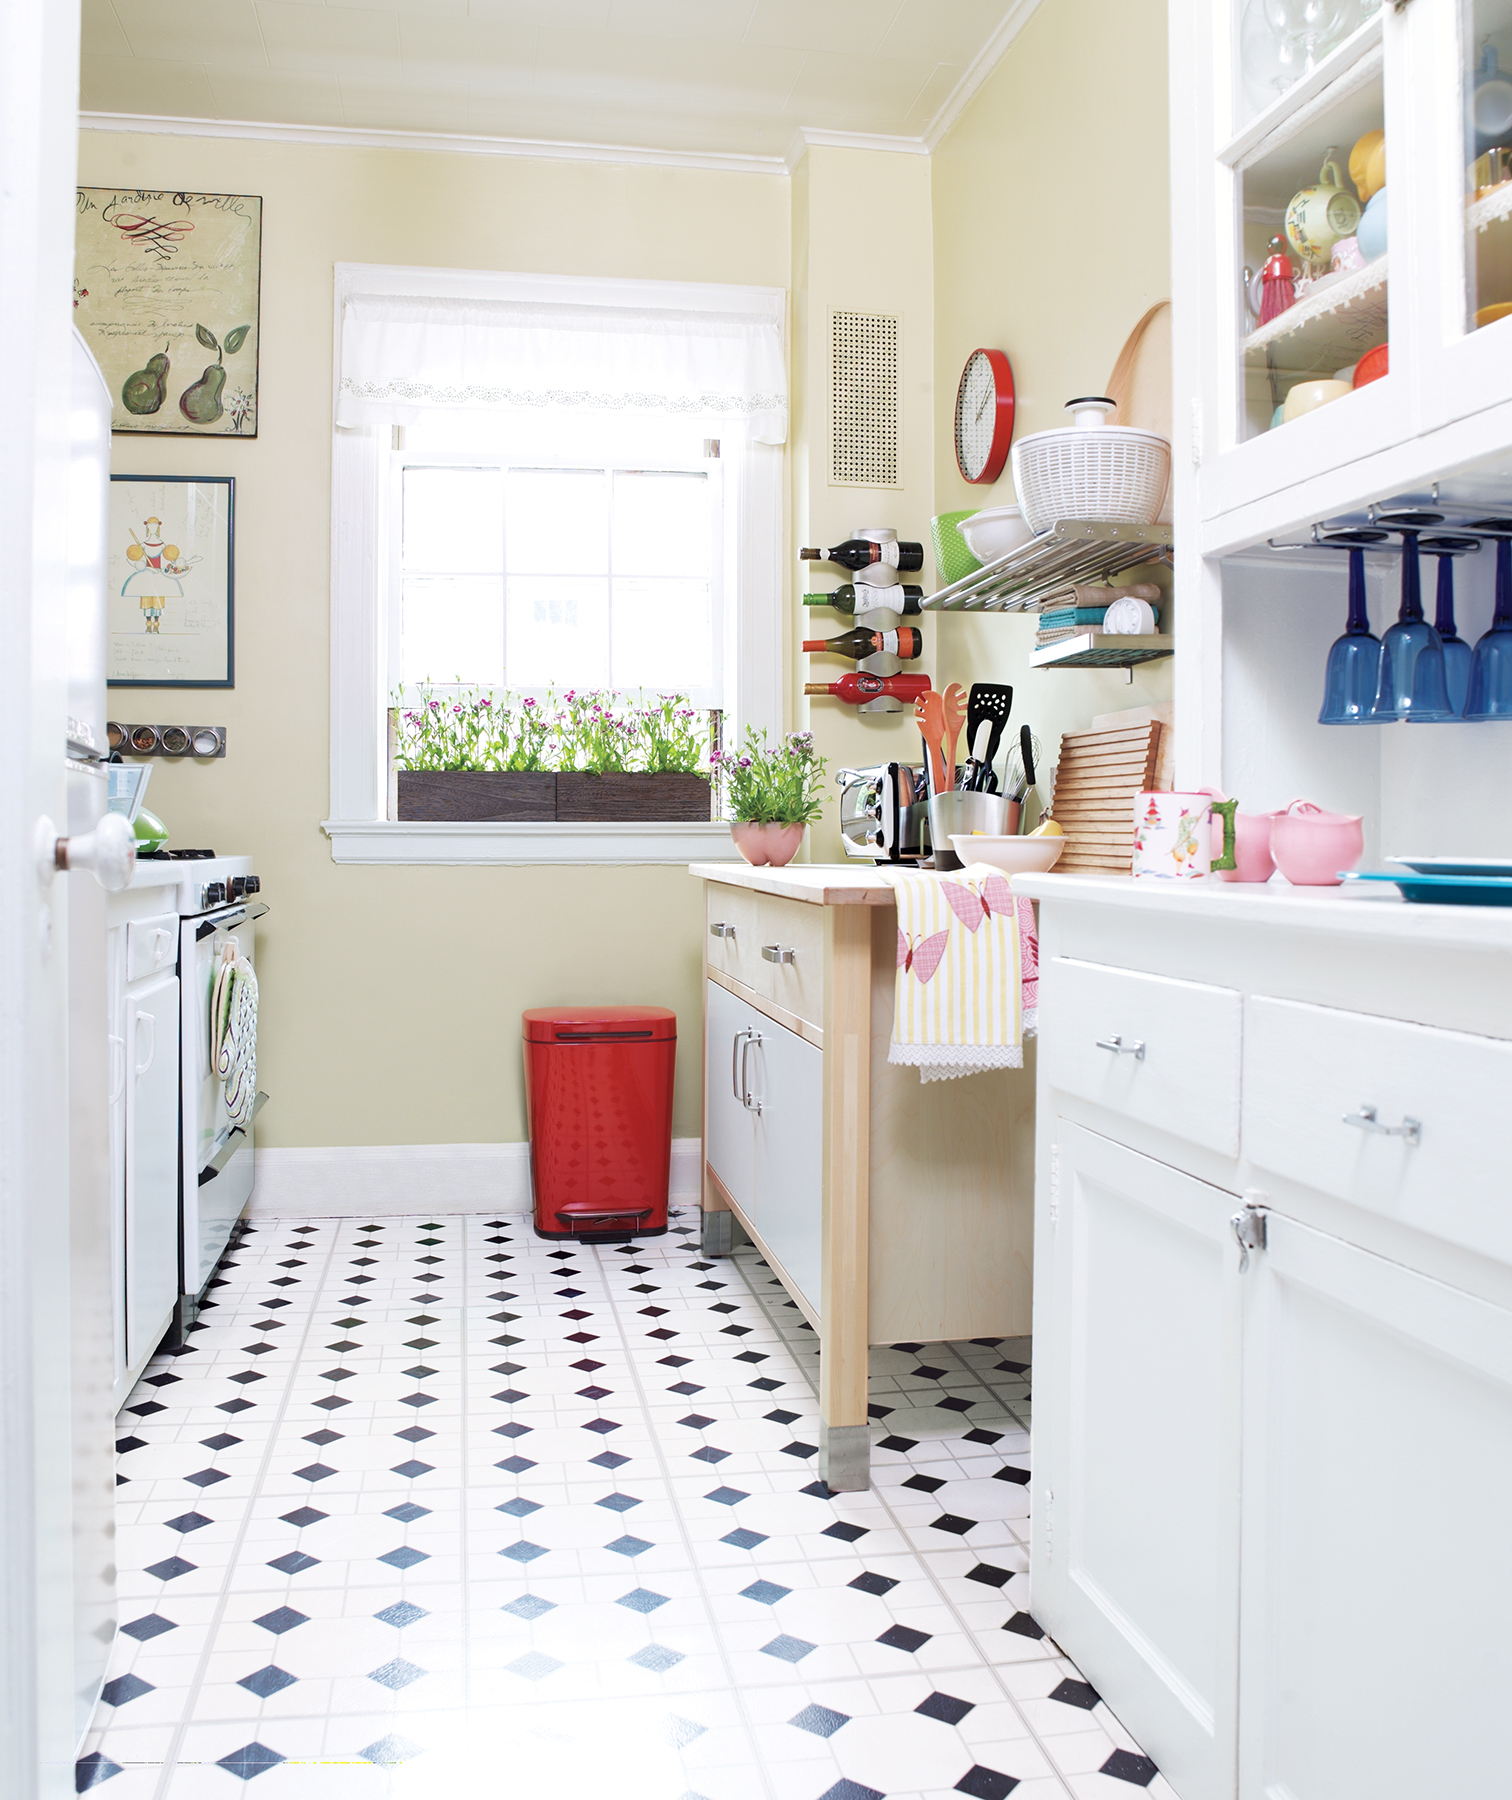 Make the Most of Small Spaces